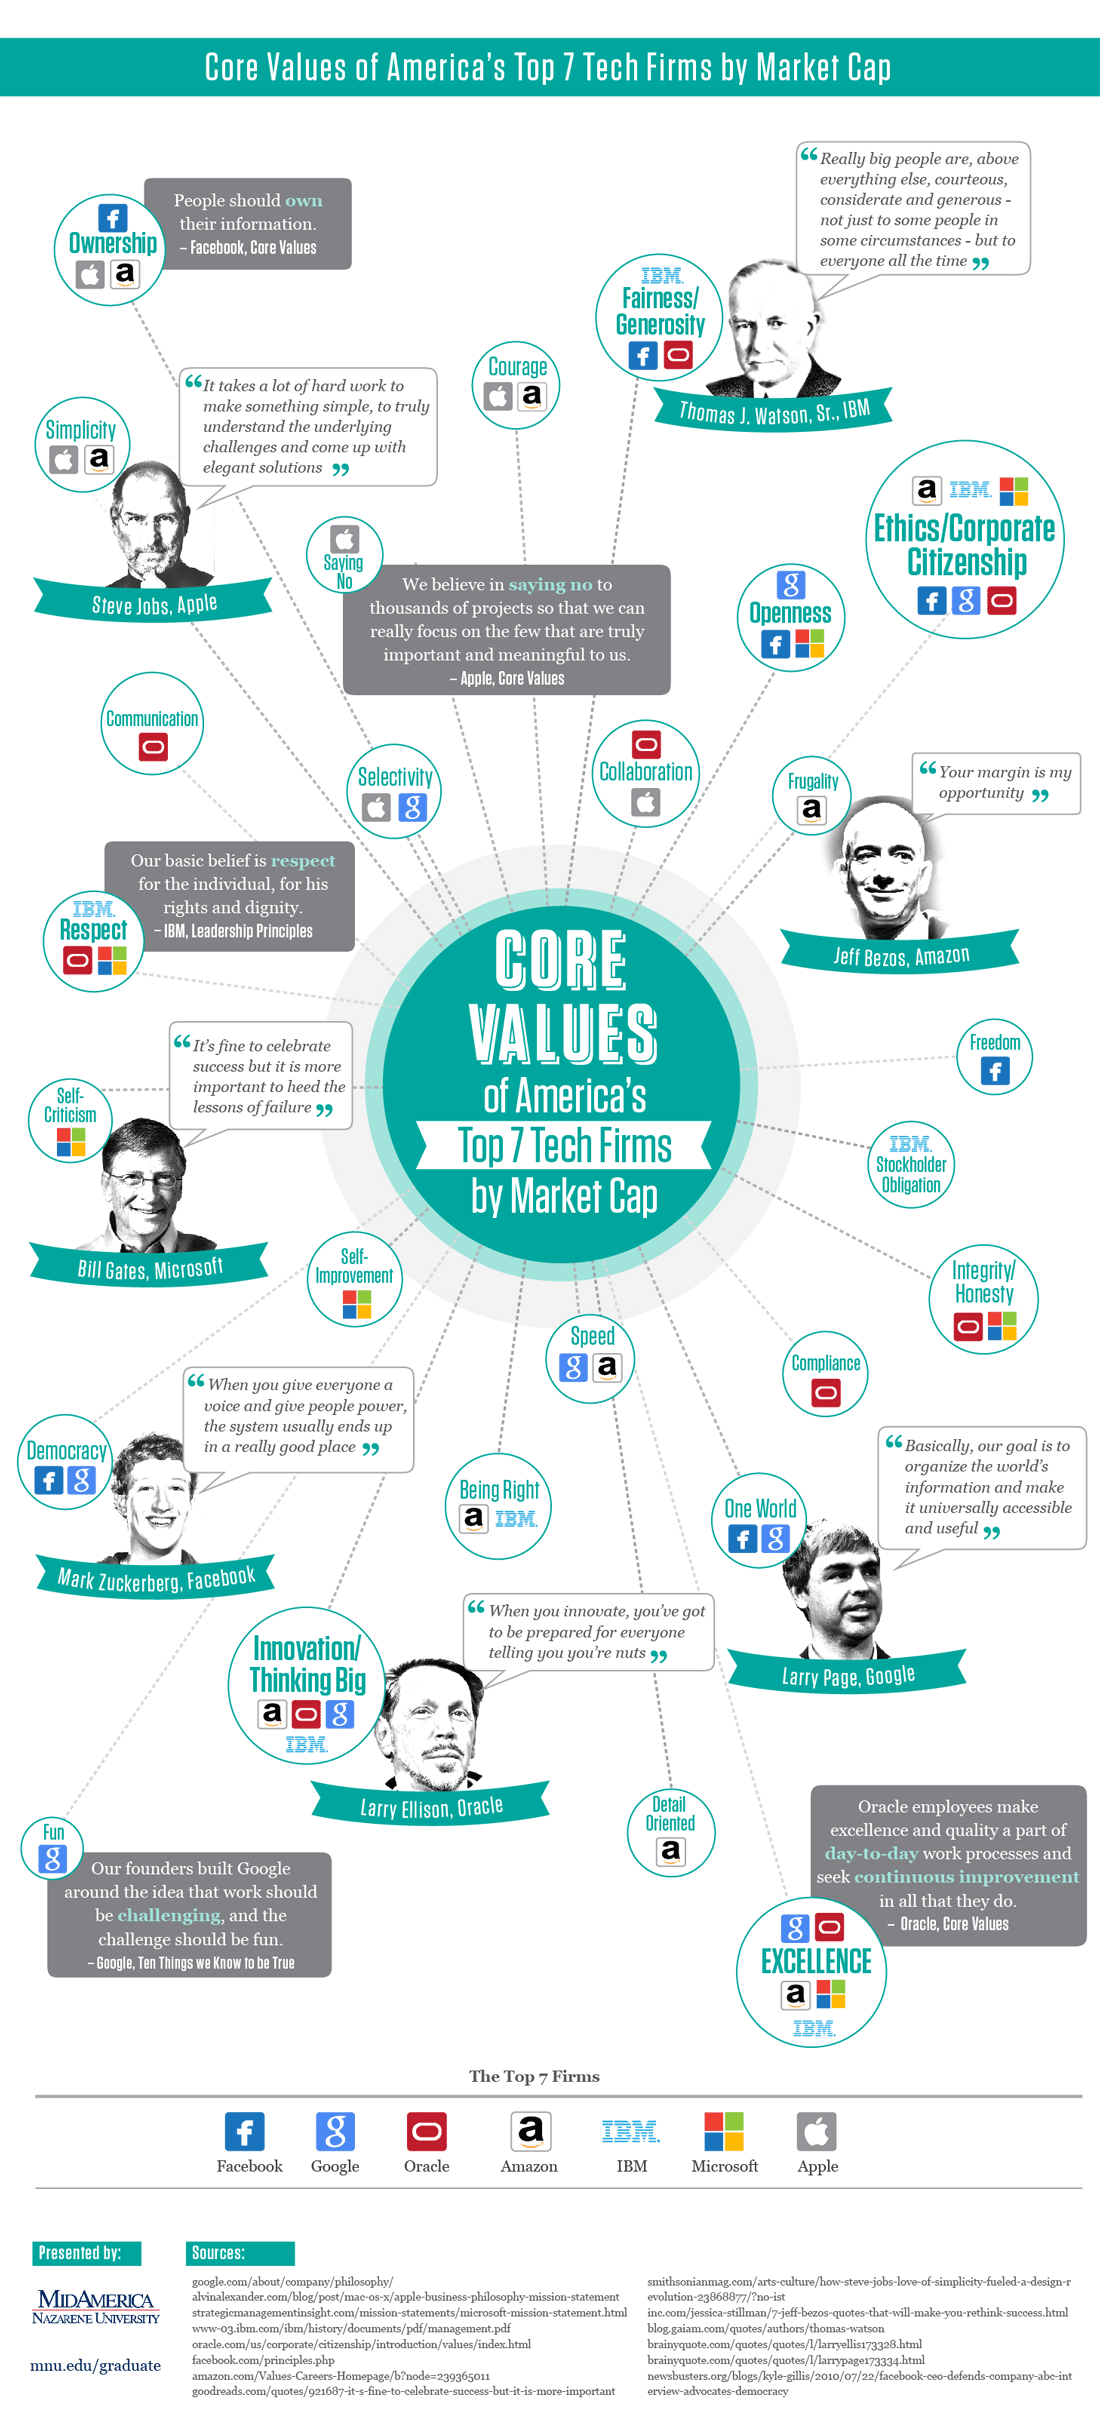 Core Values Of Top Tech Firms – An Infographic – The